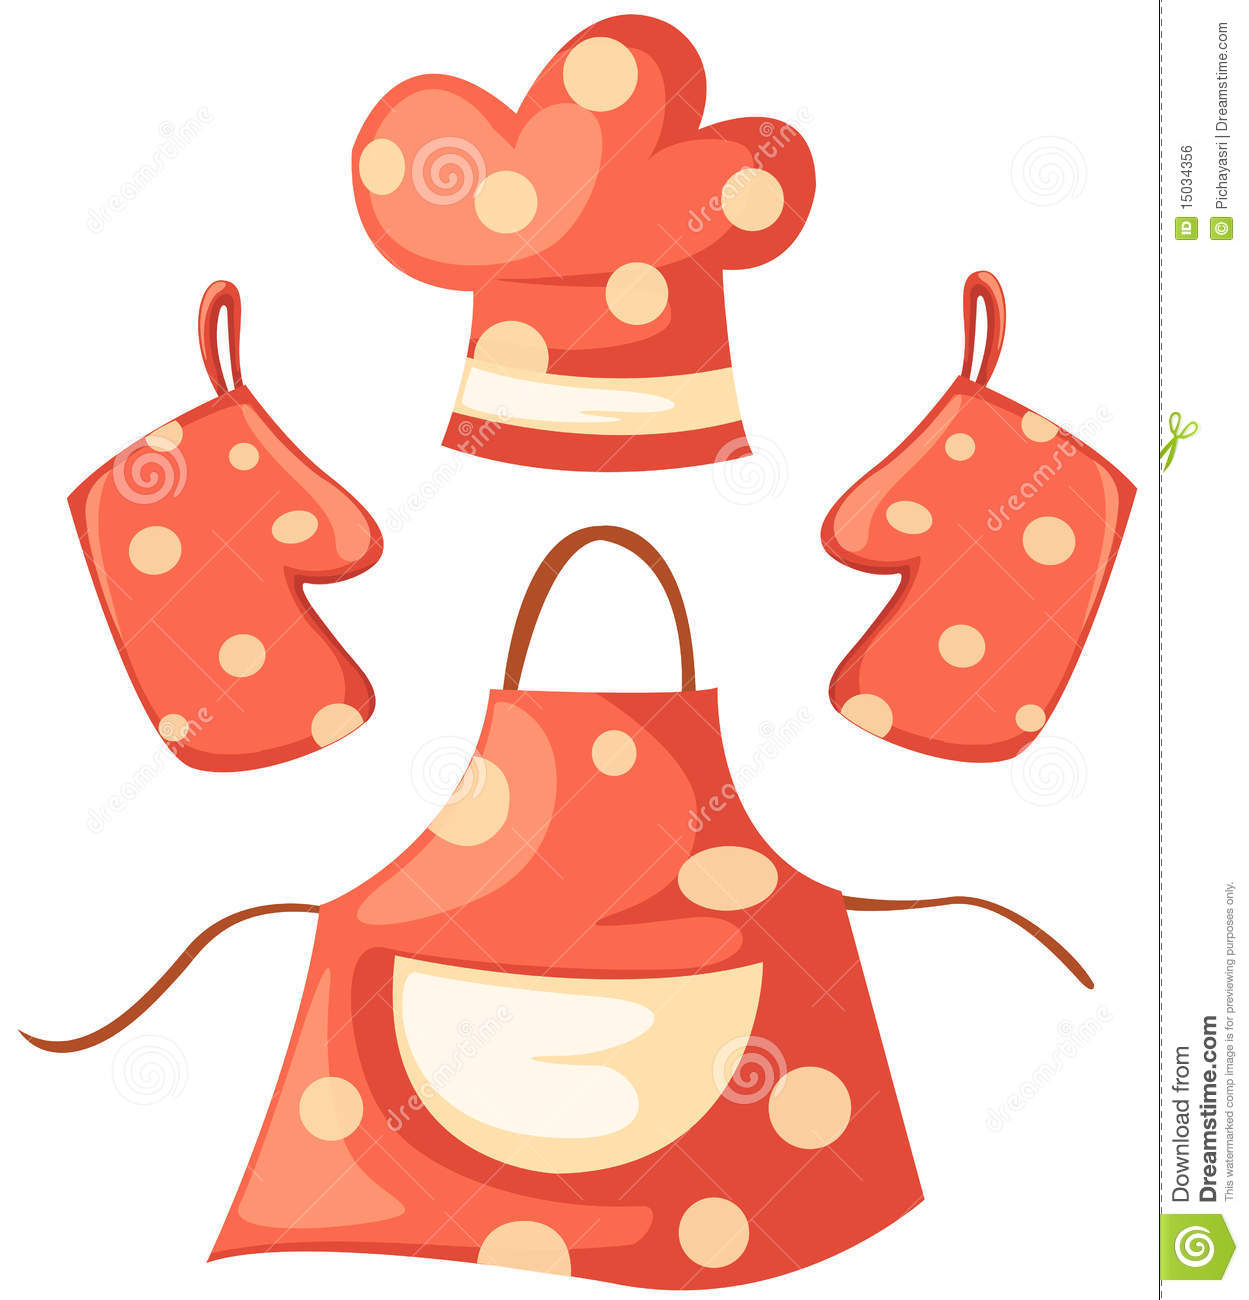 hight resolution of kitchen glove and apron and chef hat